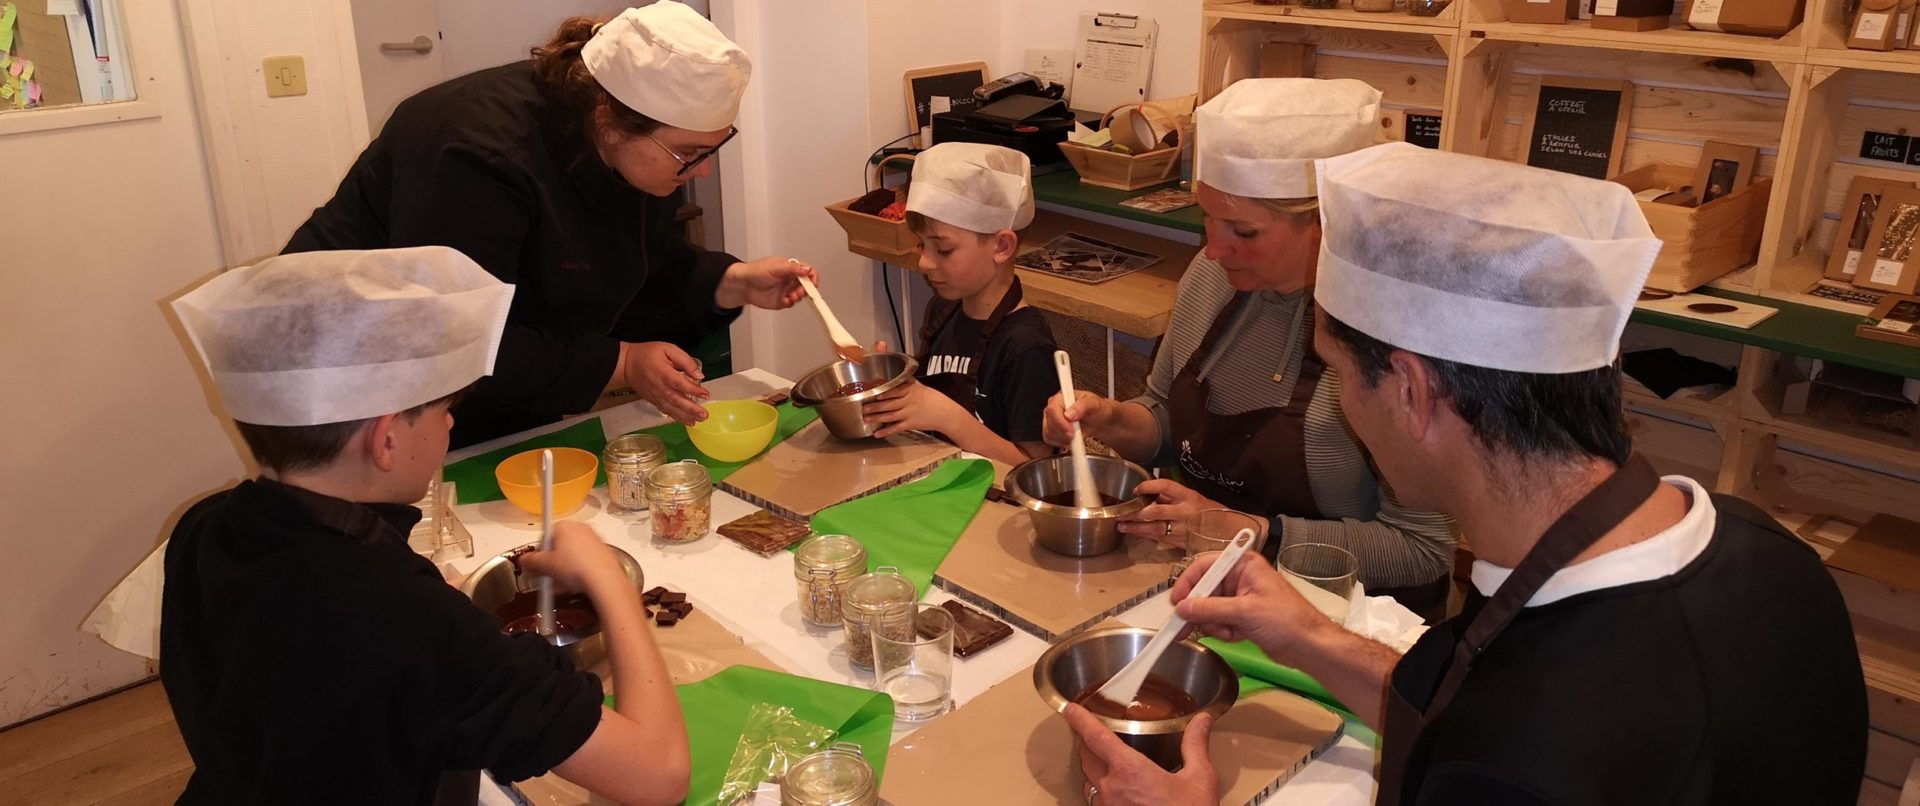 chocolate-making-course-private-workshop-paris